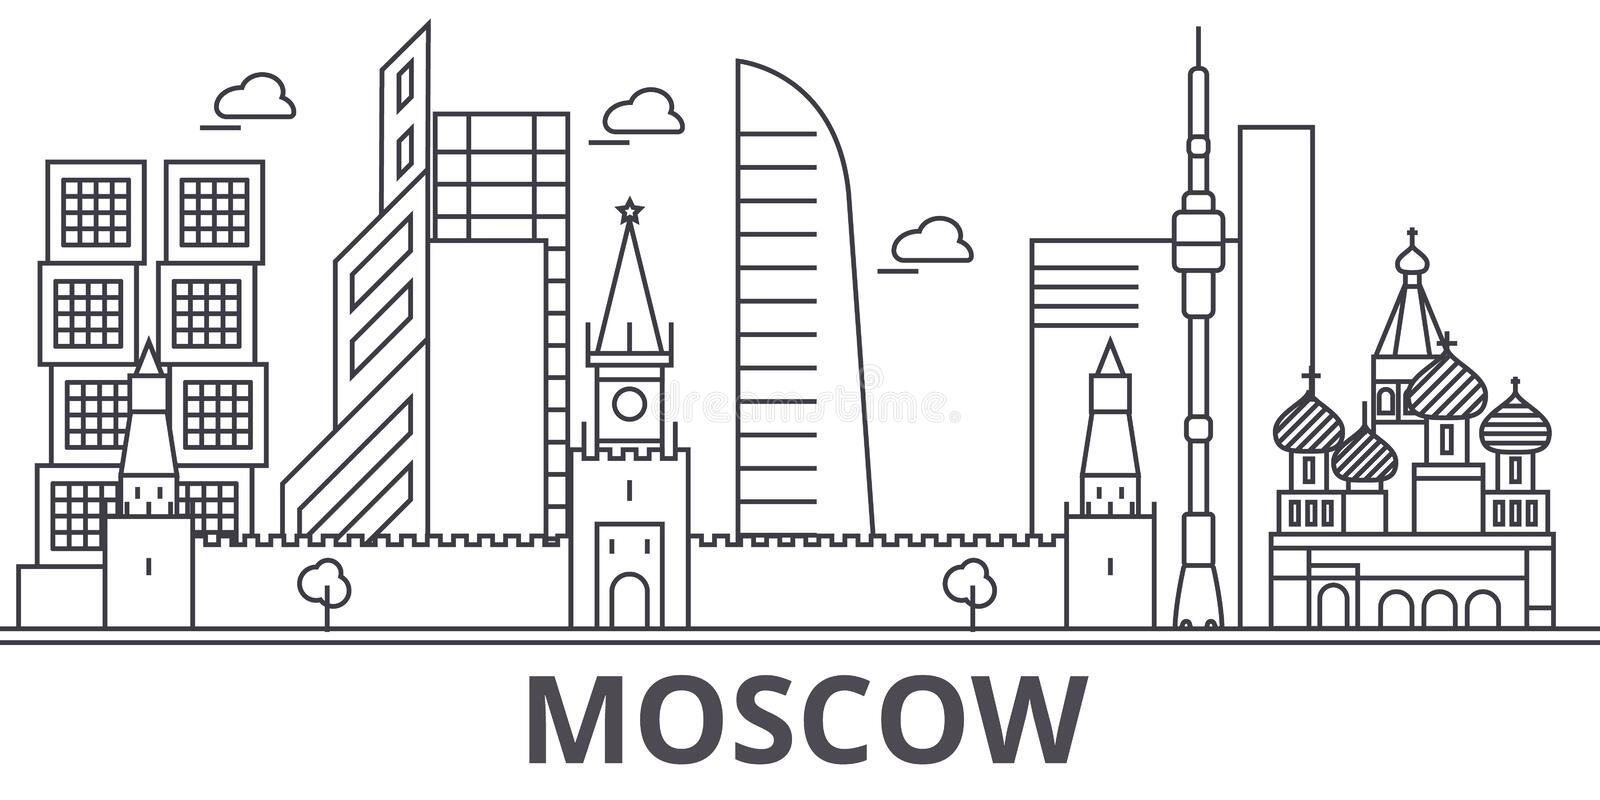 Moscow architecture line skyline illustration. Linear vector cityscape with famous landmarks, city sights, design icons. Editable strokes royalty free illustration